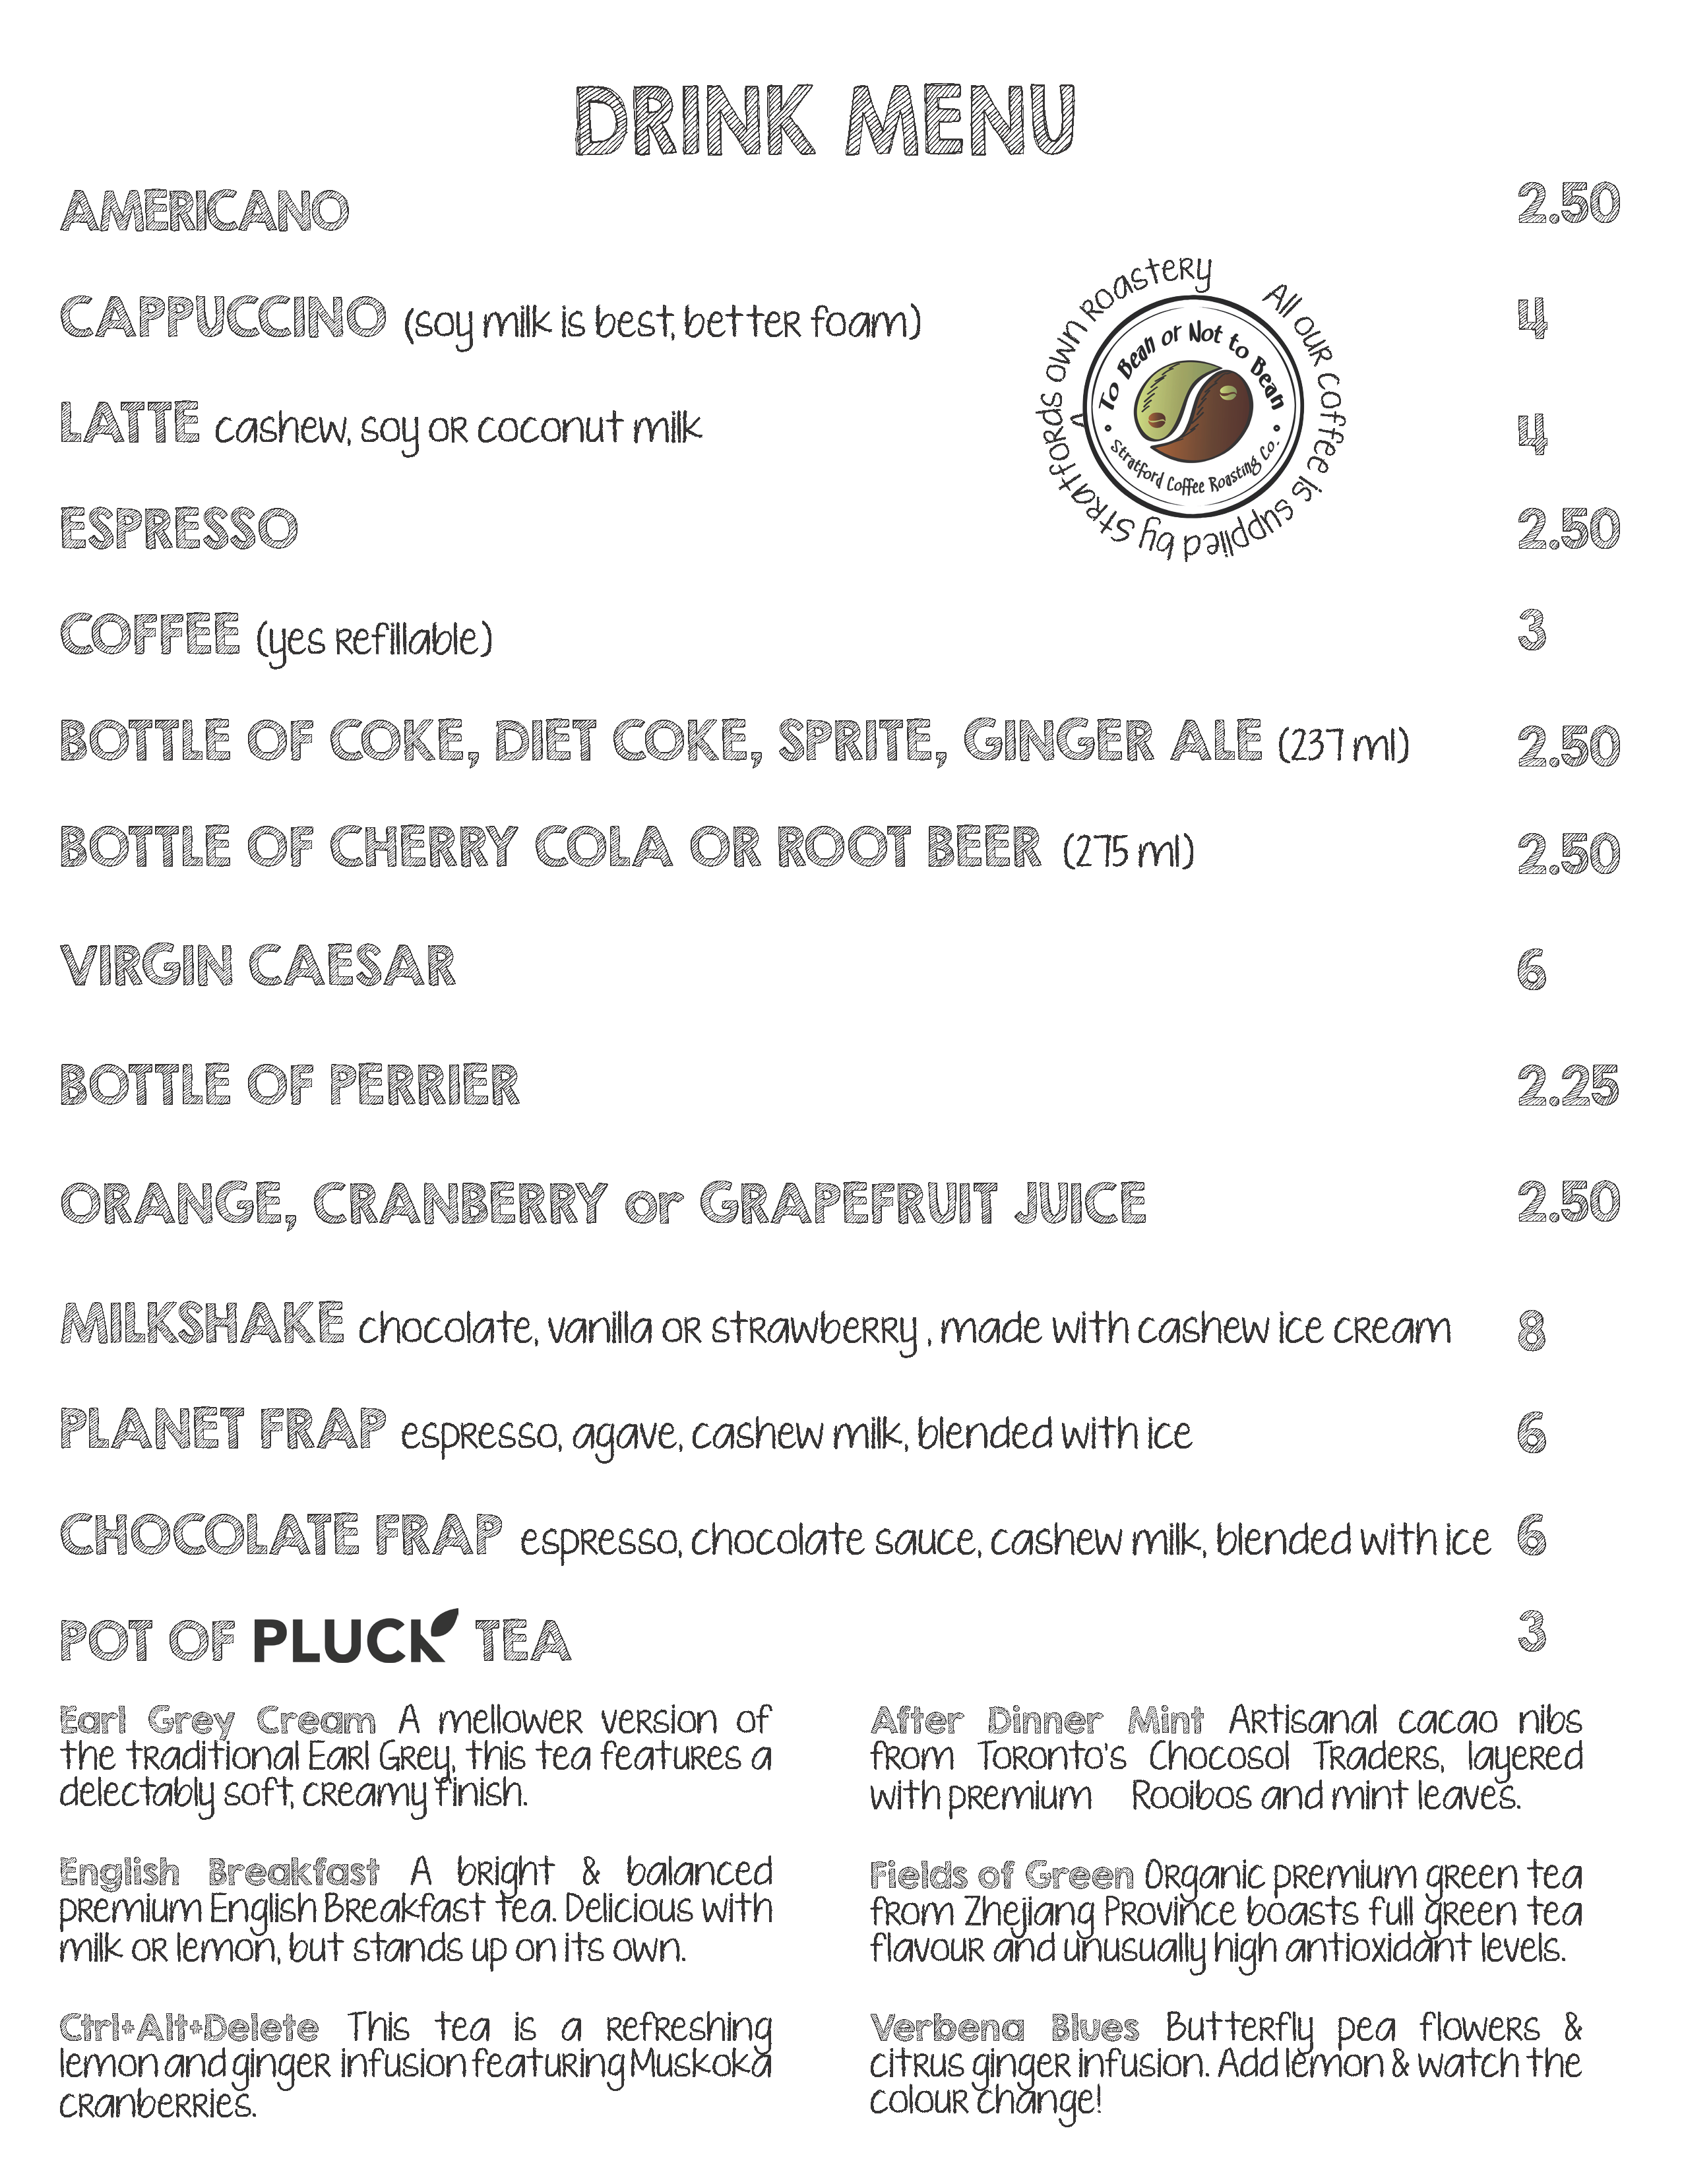 THE-PLANET-DINER-MAIN-MENU-Page_2